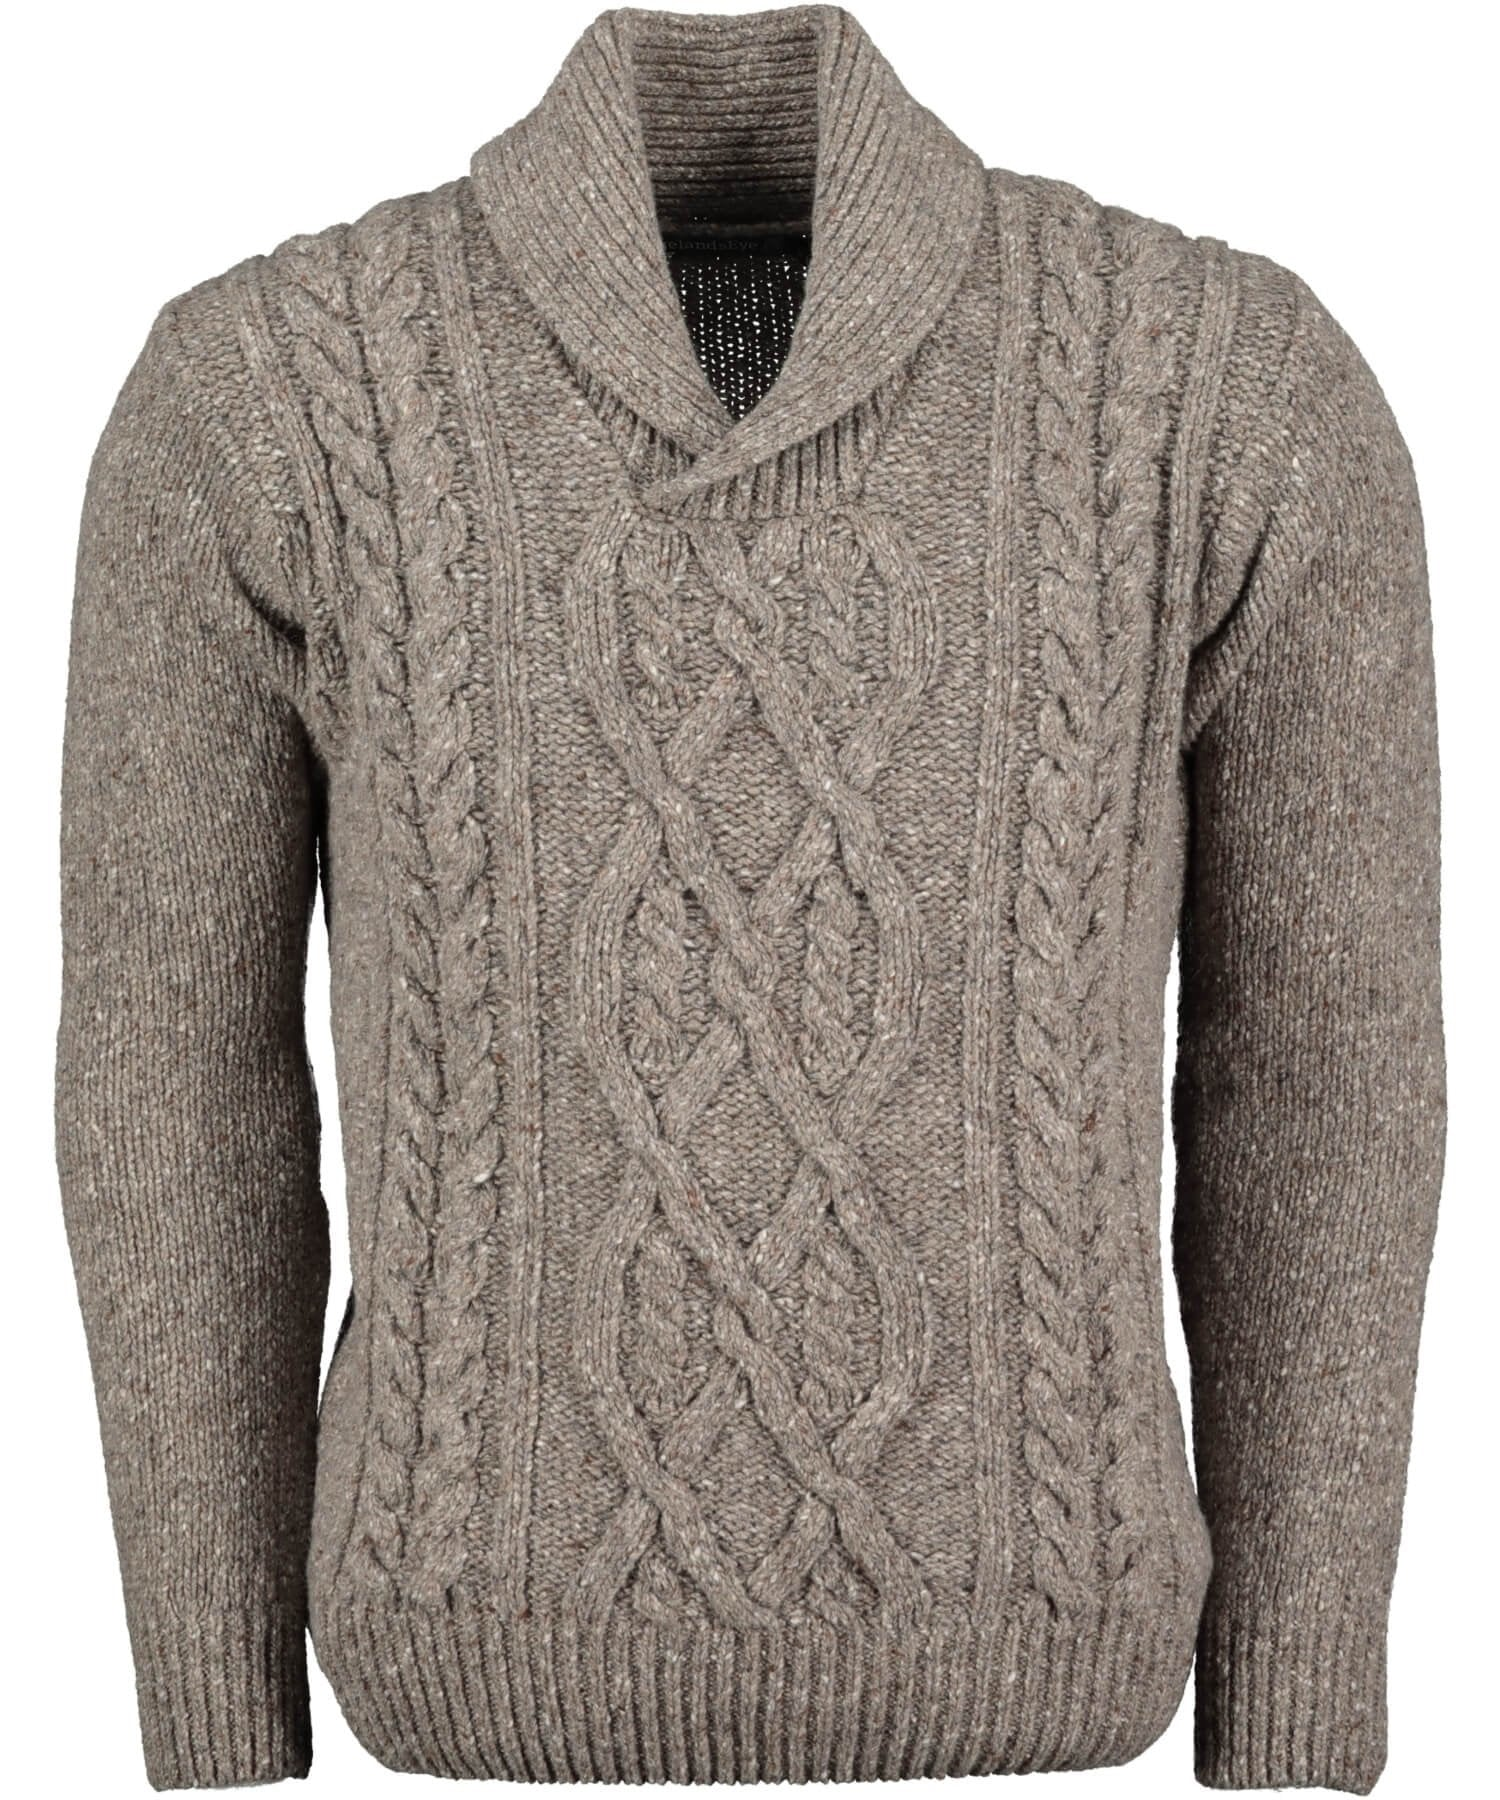 Clonard Shawl Collar Sweater - Rocky Ground Irelands Eye Mens Sweaters & Cardigans